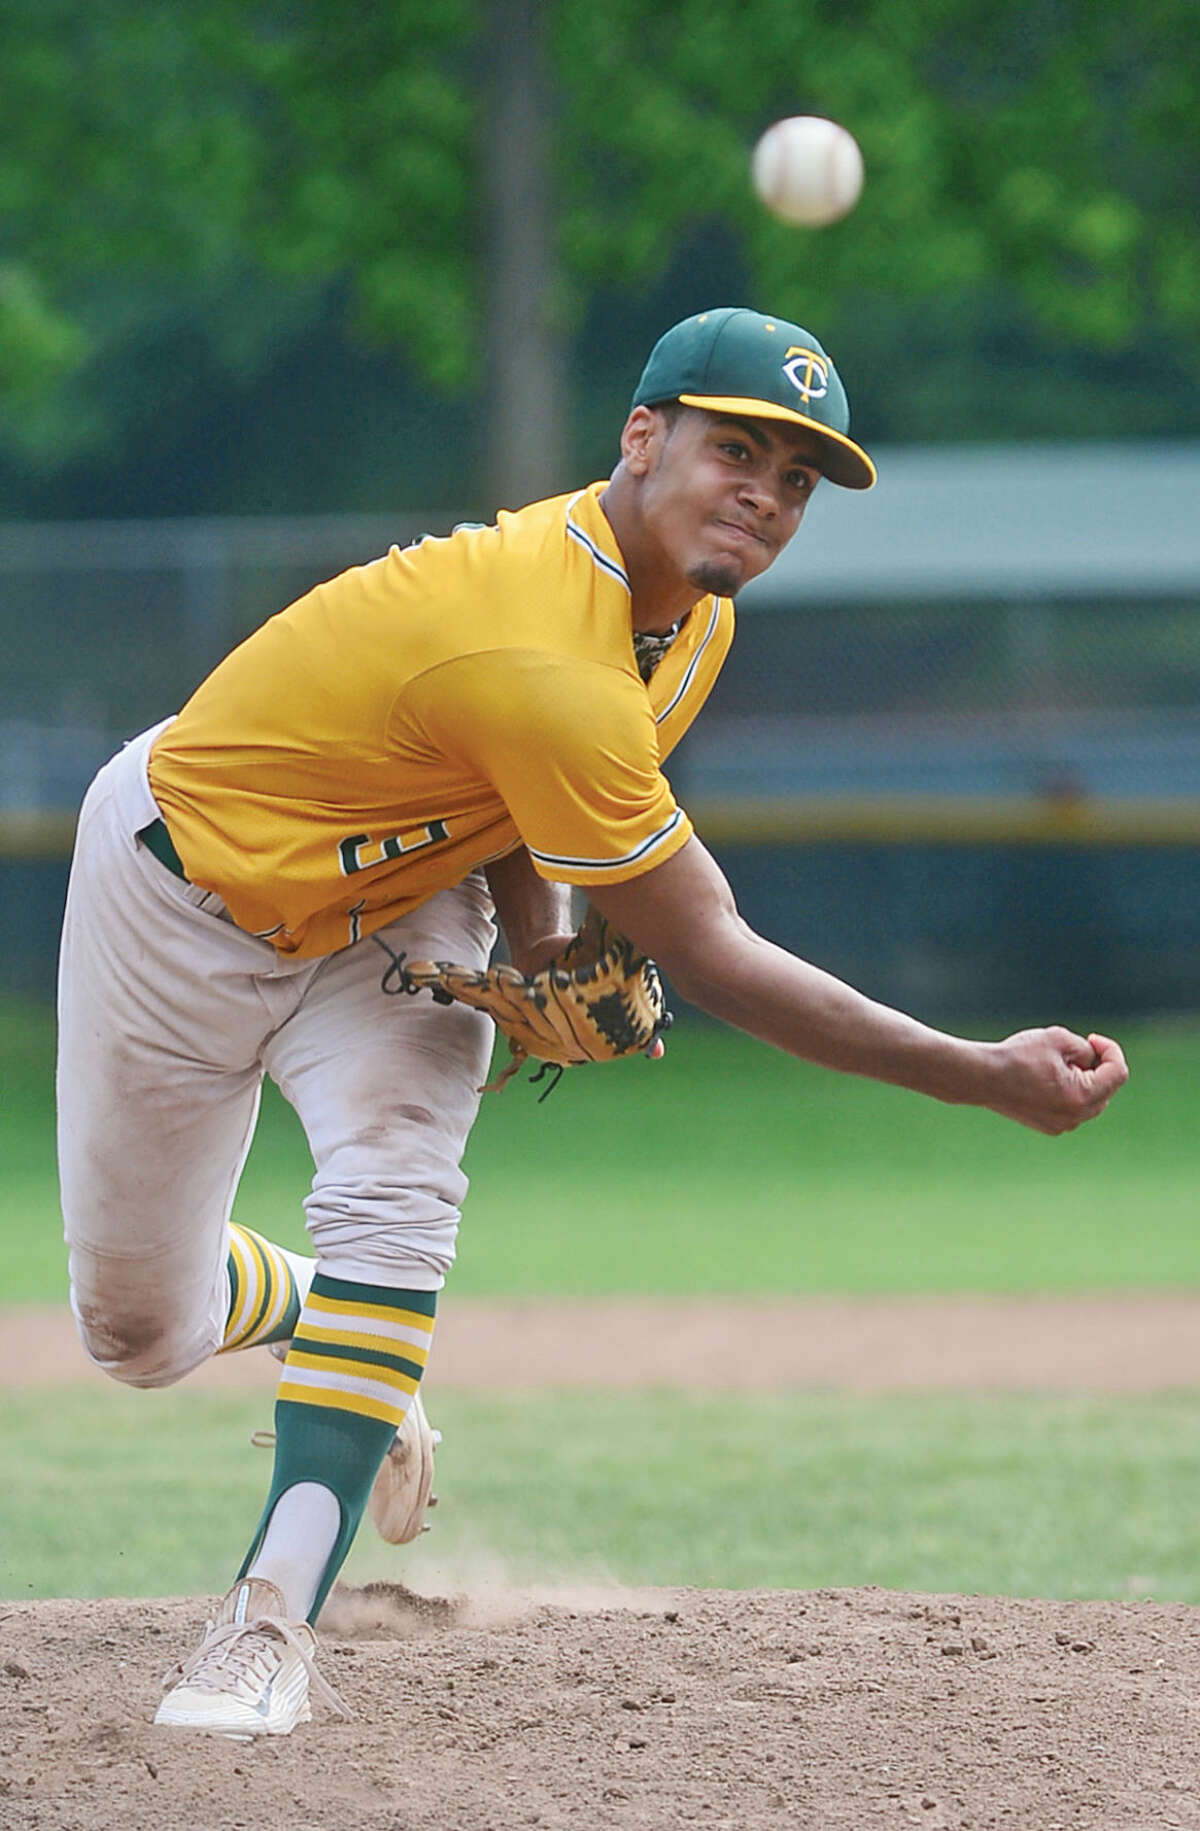 Hour photo / Erik Trautmann Trinity Catholic's pitcher Randy Polonia throws against New Canaan during their FCIAC semi final Tuesday at Mead Park in New Canaan.